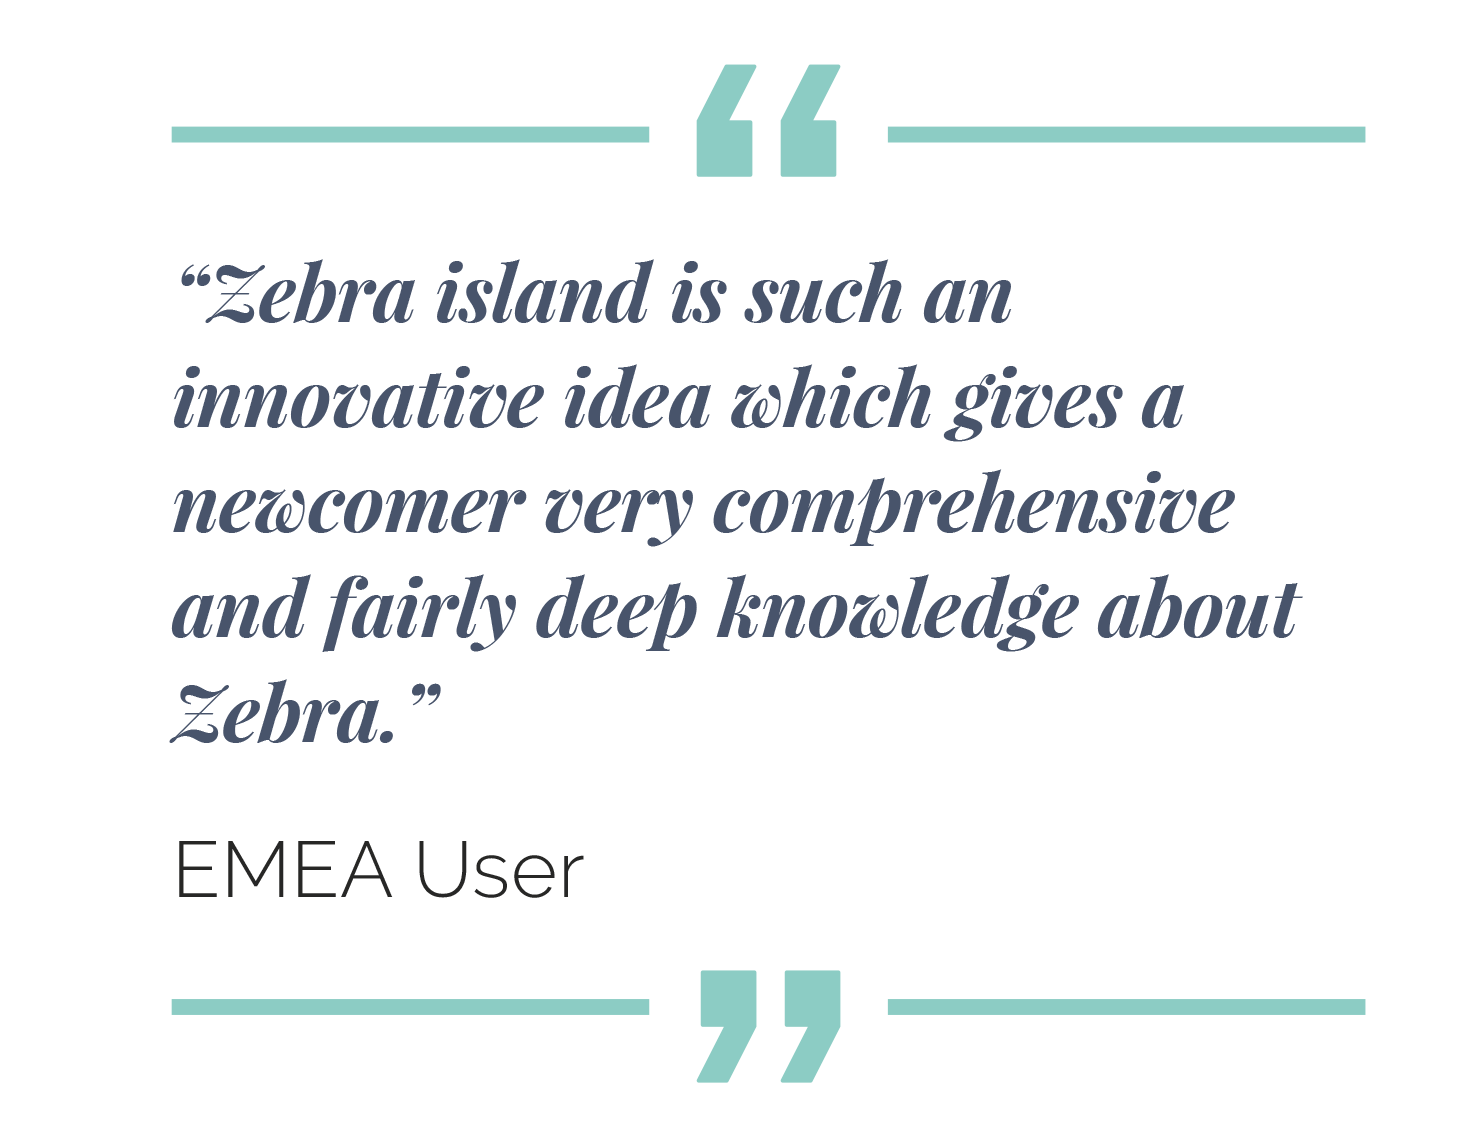 is such an innovative idea wich gives a newcomer very cohomprensive and knowledge about Zebra